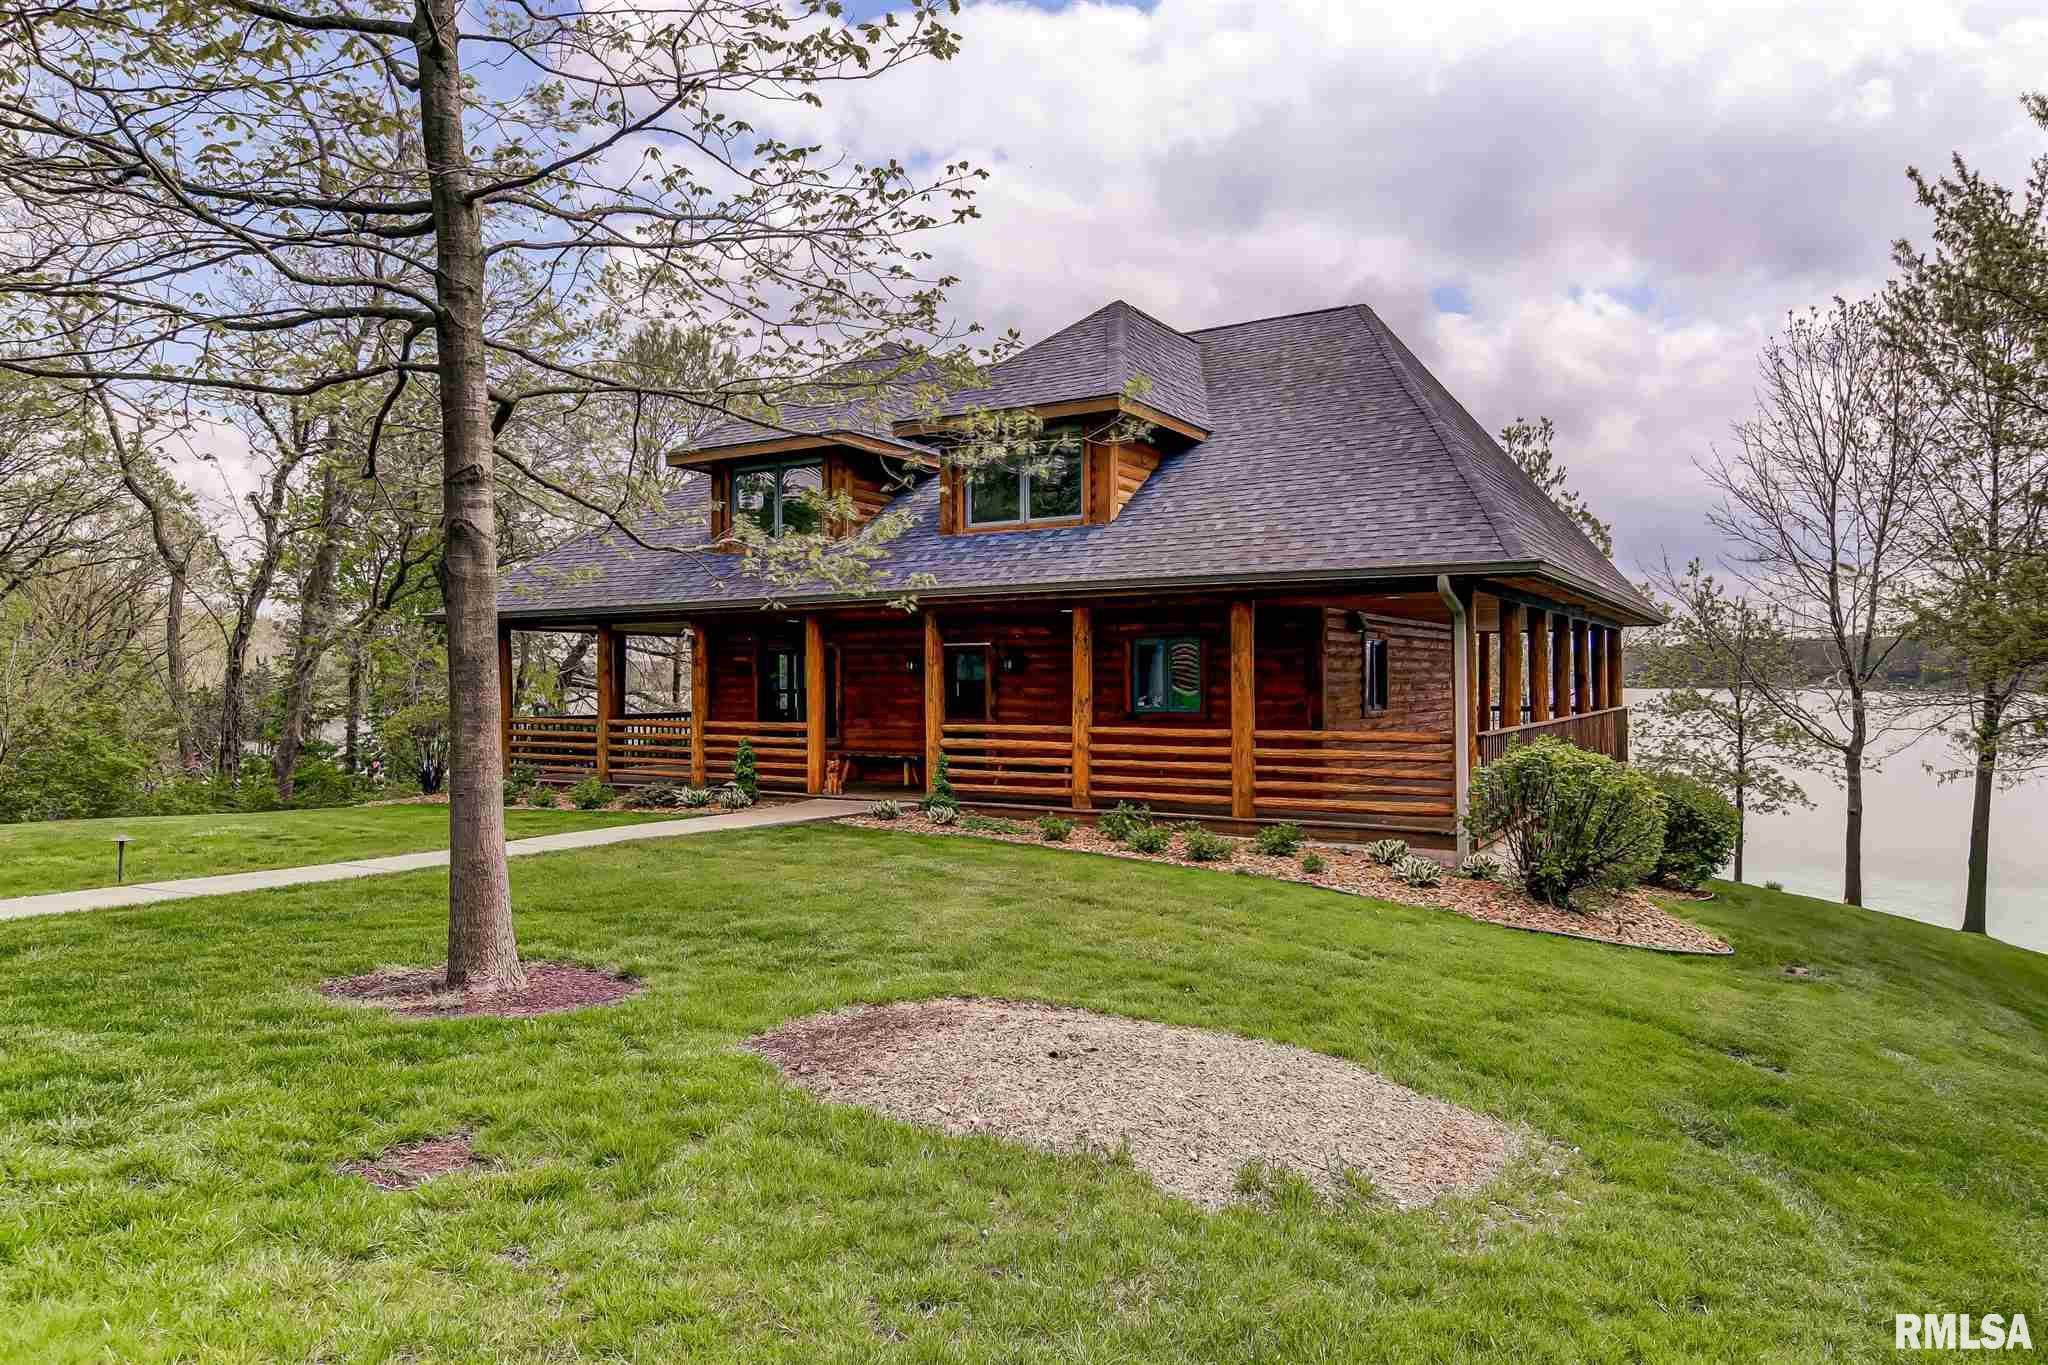 34 ISLAND VIEW Property Photo - Springfield, IL real estate listing